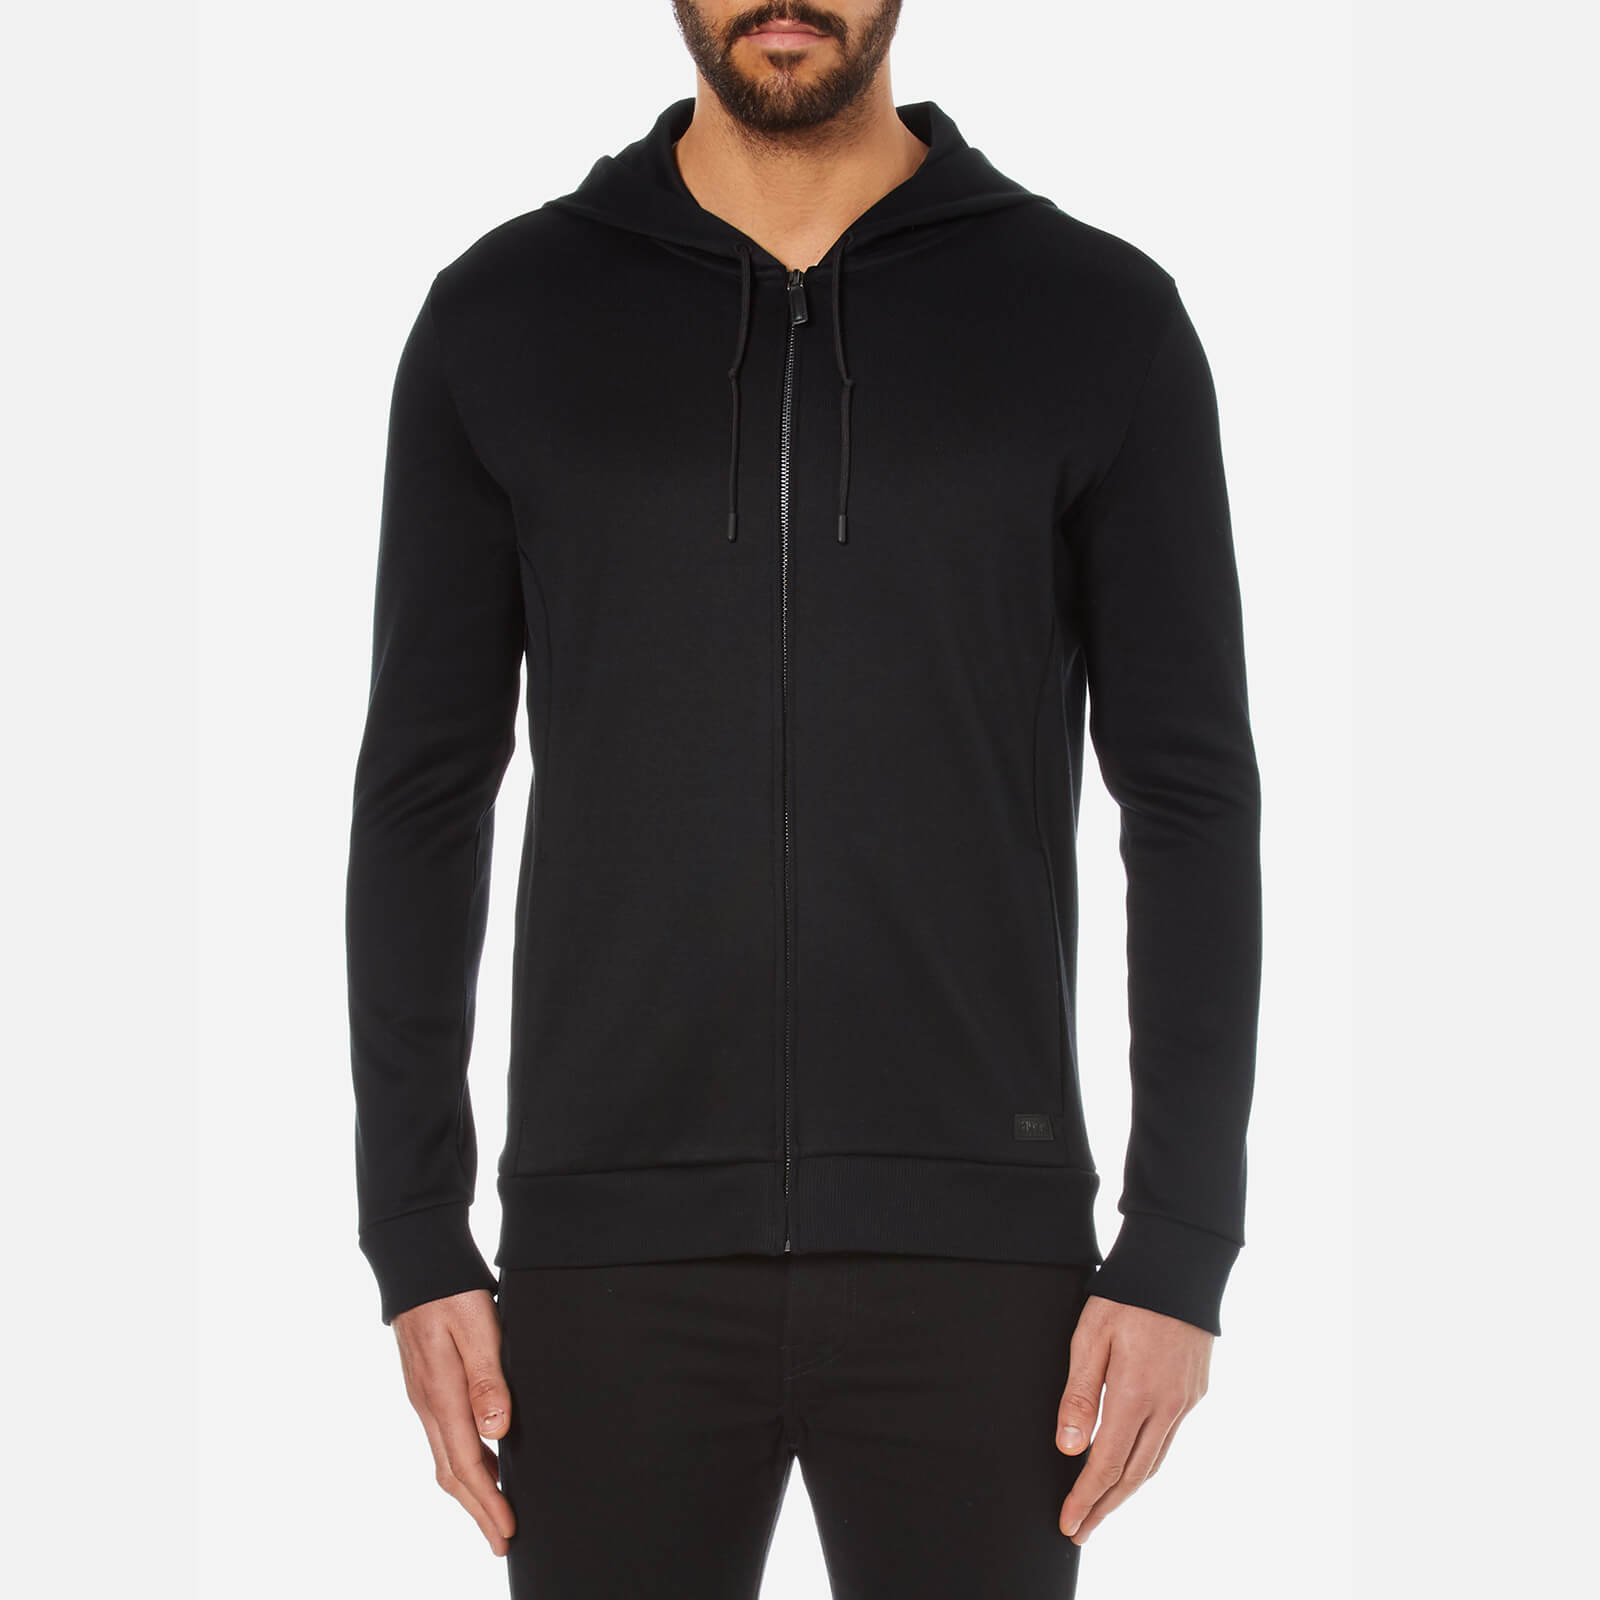 ef5eefb53 HUGO Men's Doscato French Rib Hoody - Black - Free UK Delivery over £50